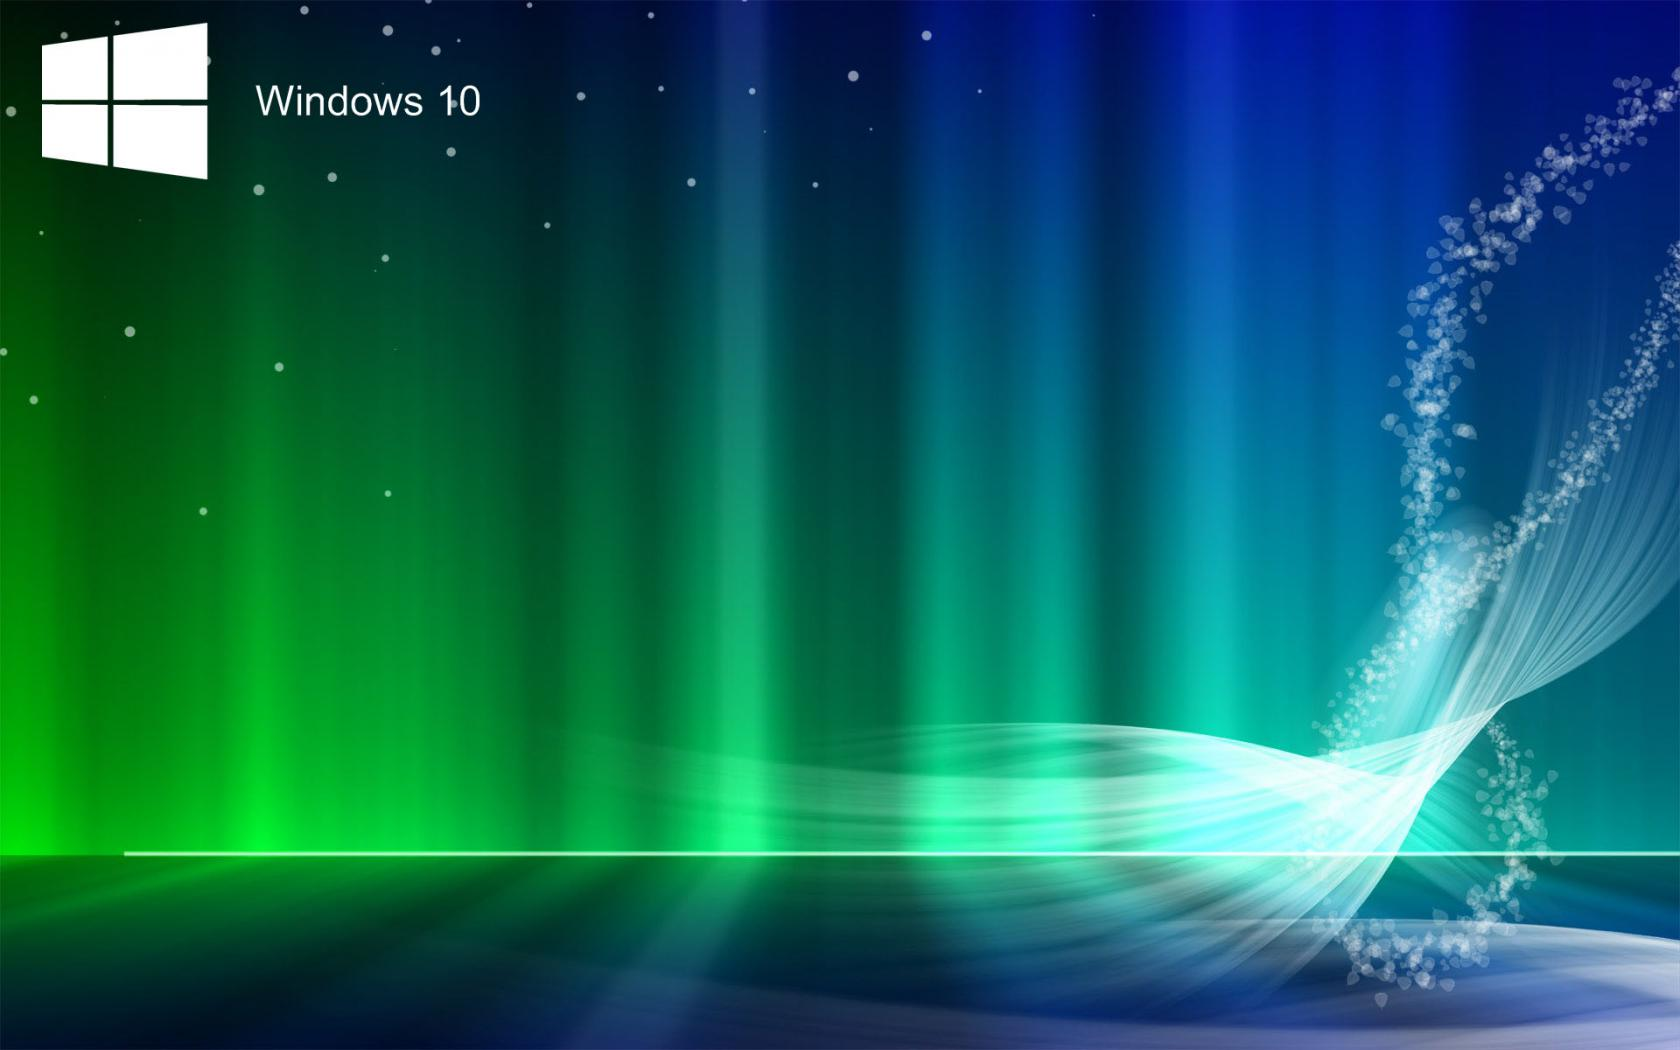 49 Windows 10 Wallpaper 1440x900 On Wallpapersafari